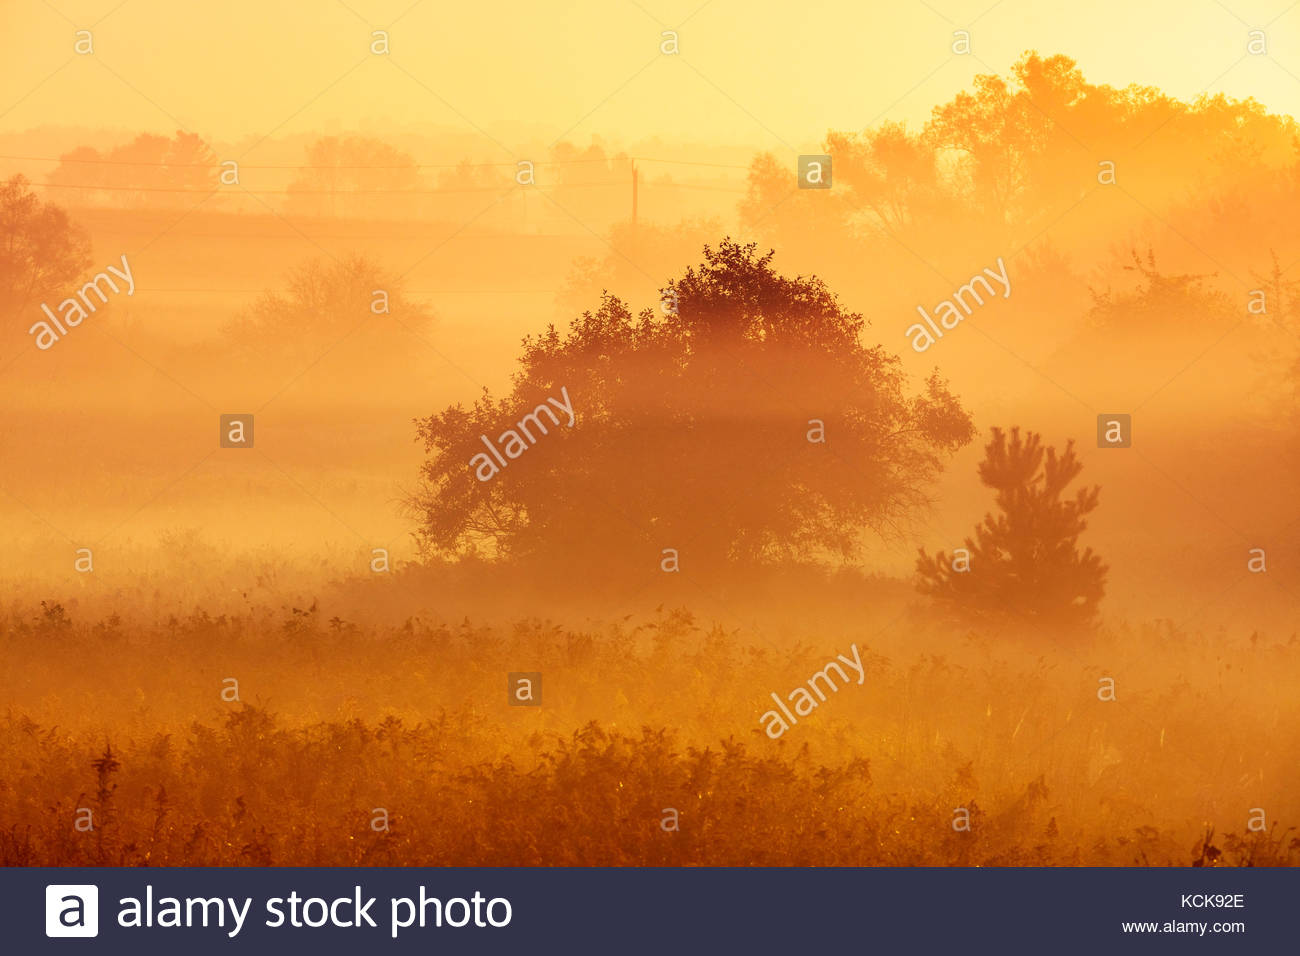 Radiation fog and misty trees in early morning in Whitby Ontario Canada Stock Photo